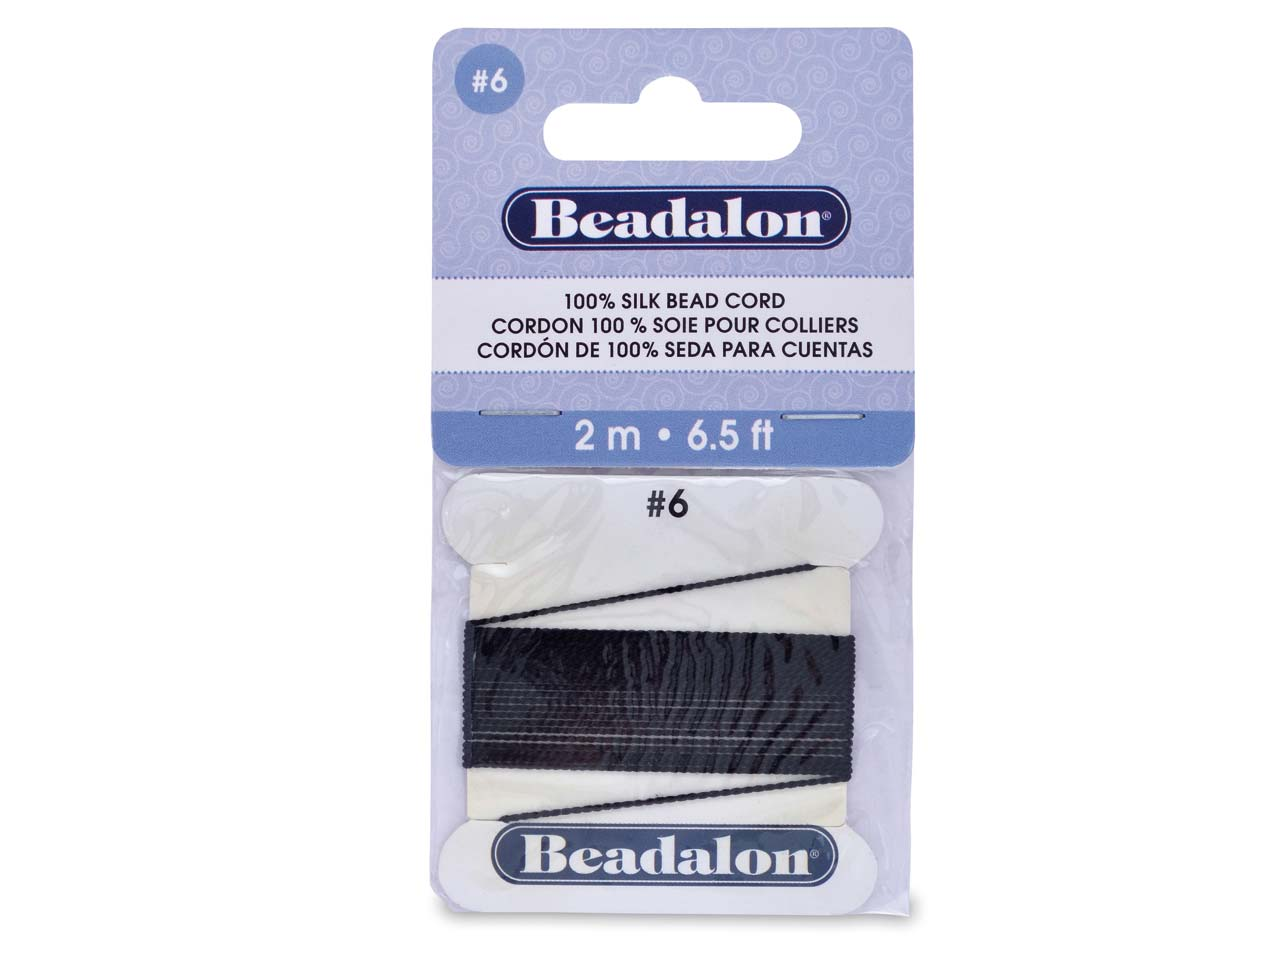 Beadalon Black Silk Thread With    Needle, Size 6 0.70mm 2m Length